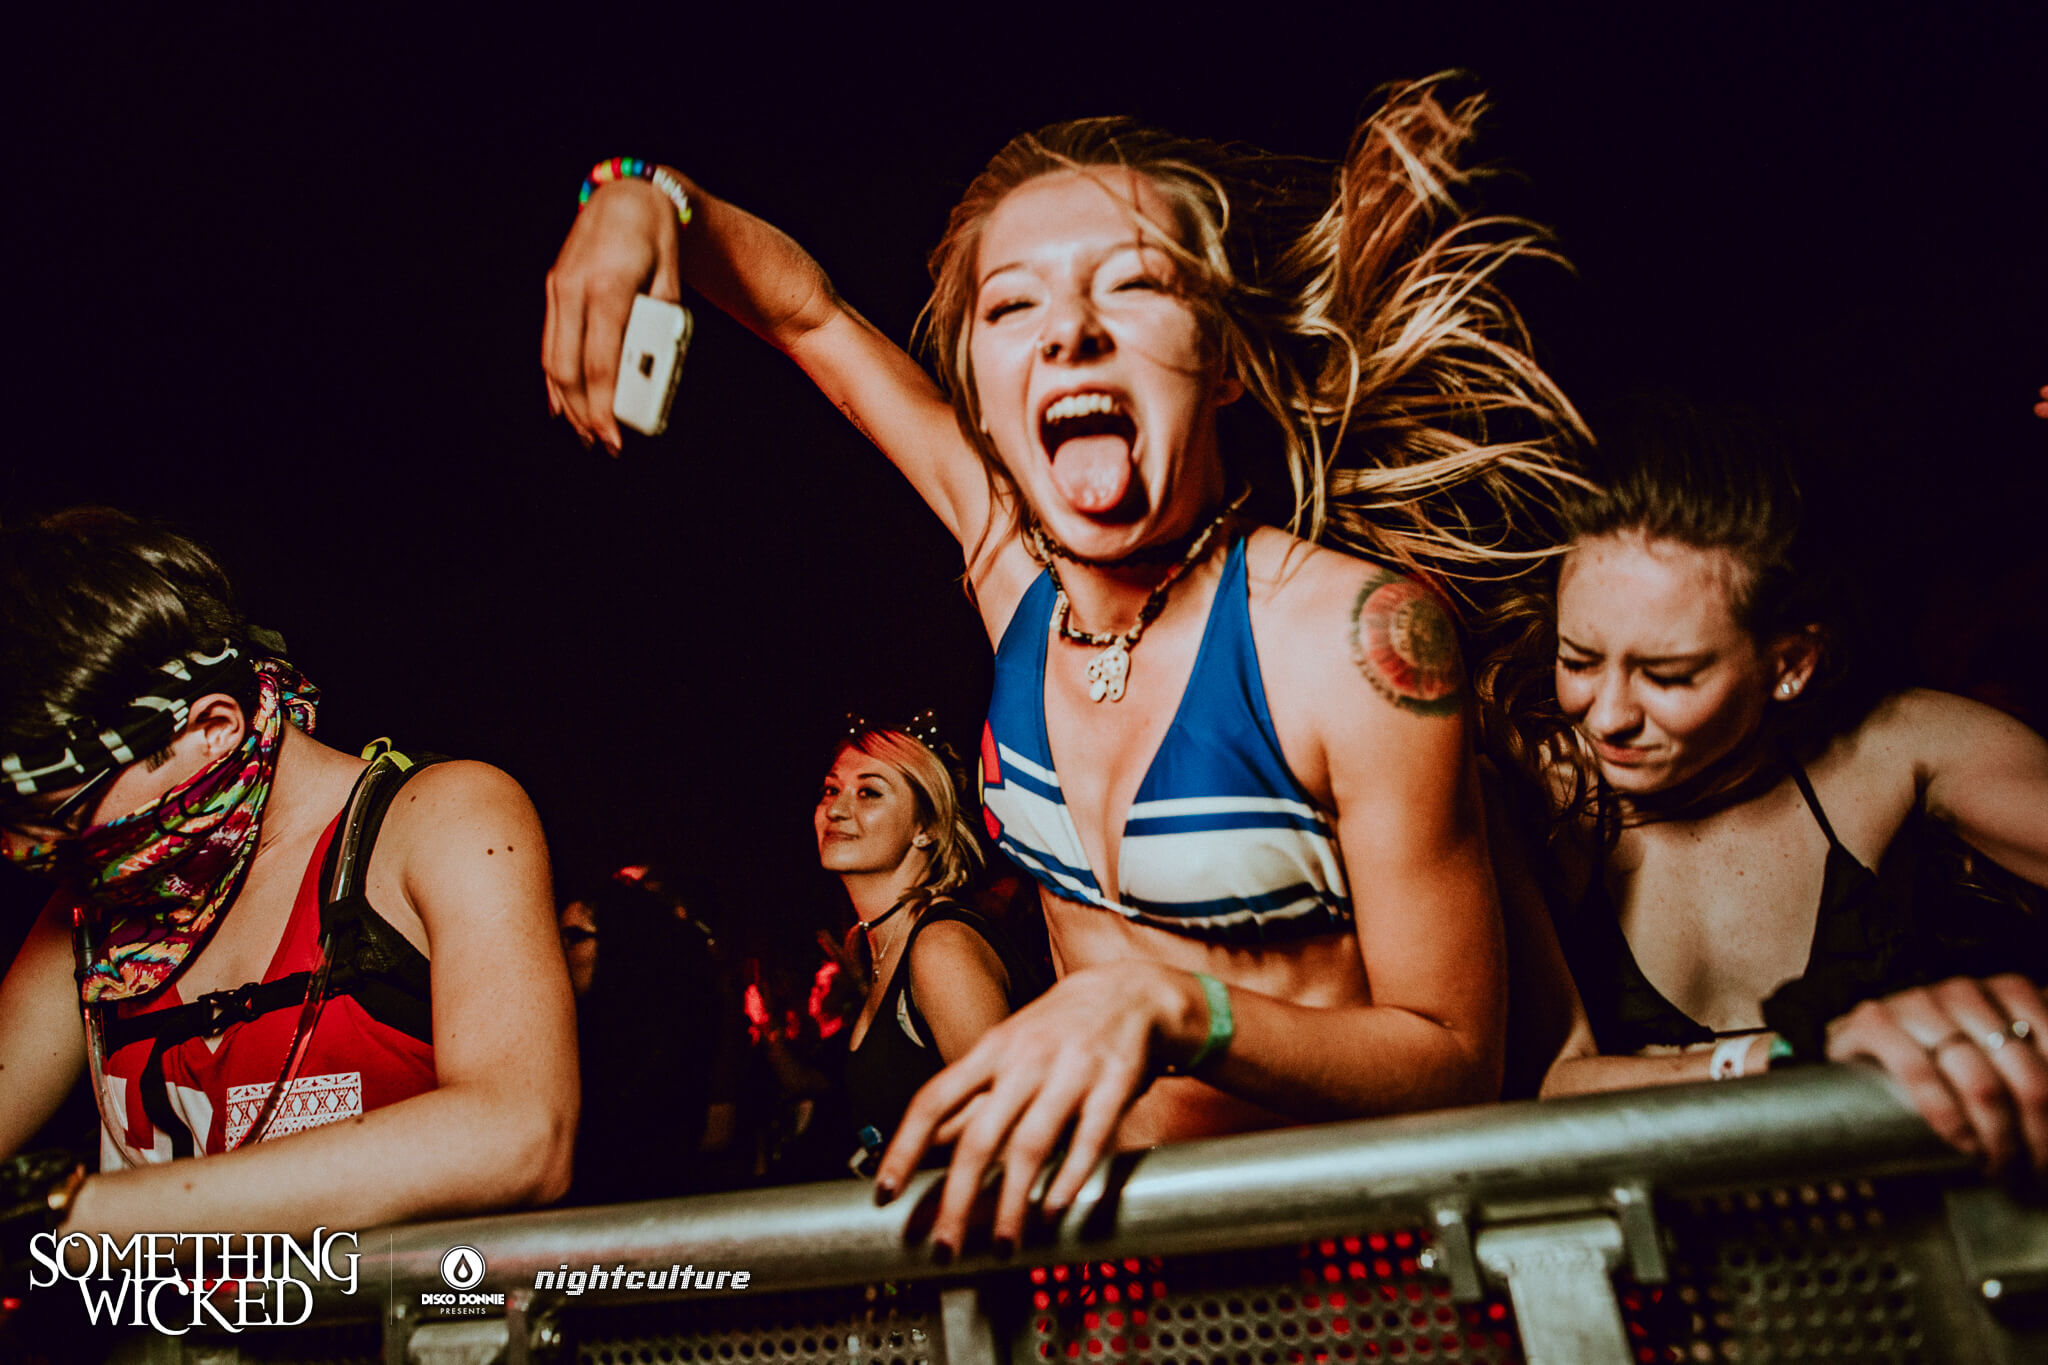 Fans at Something Wicked. Photo by Julian Bajsel.